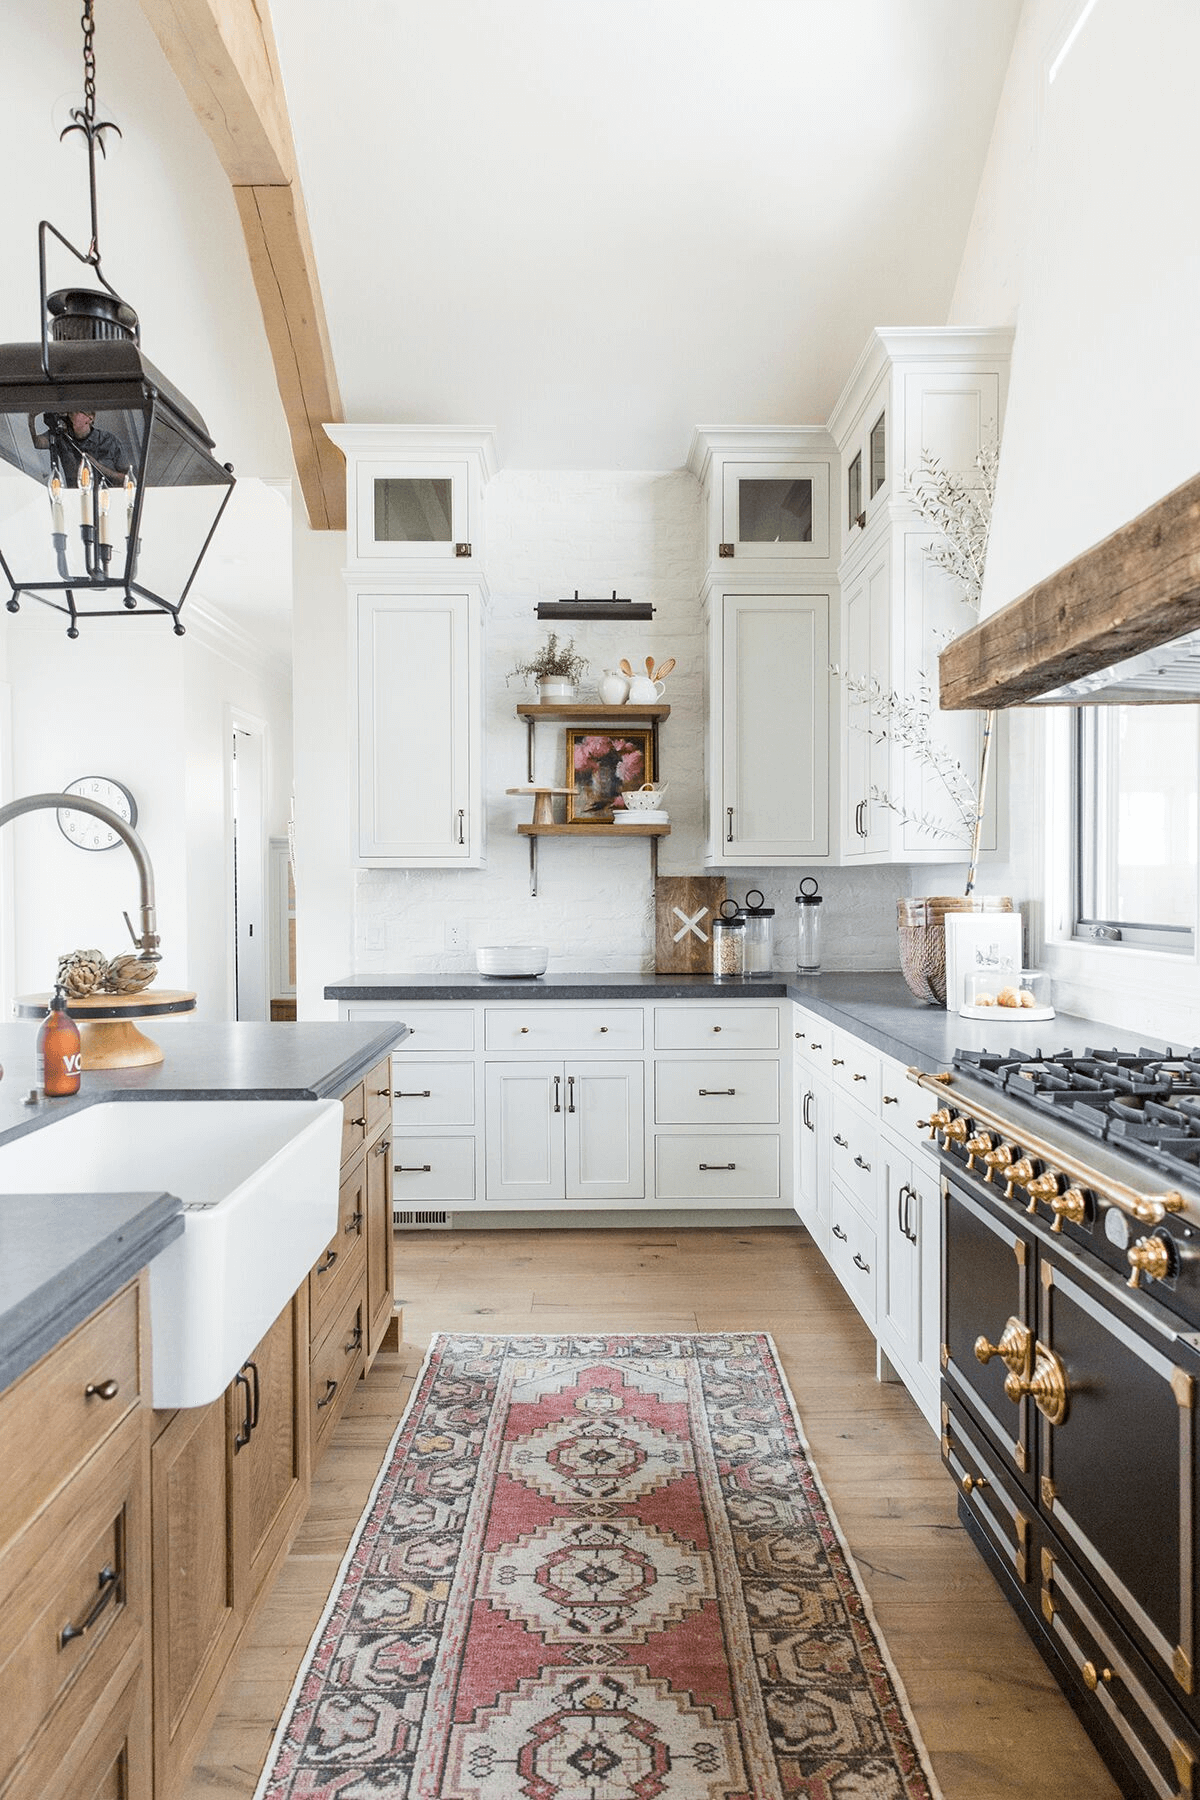 this is a farmhouse kitchen with a white apron sink and wooden cabinets(1)